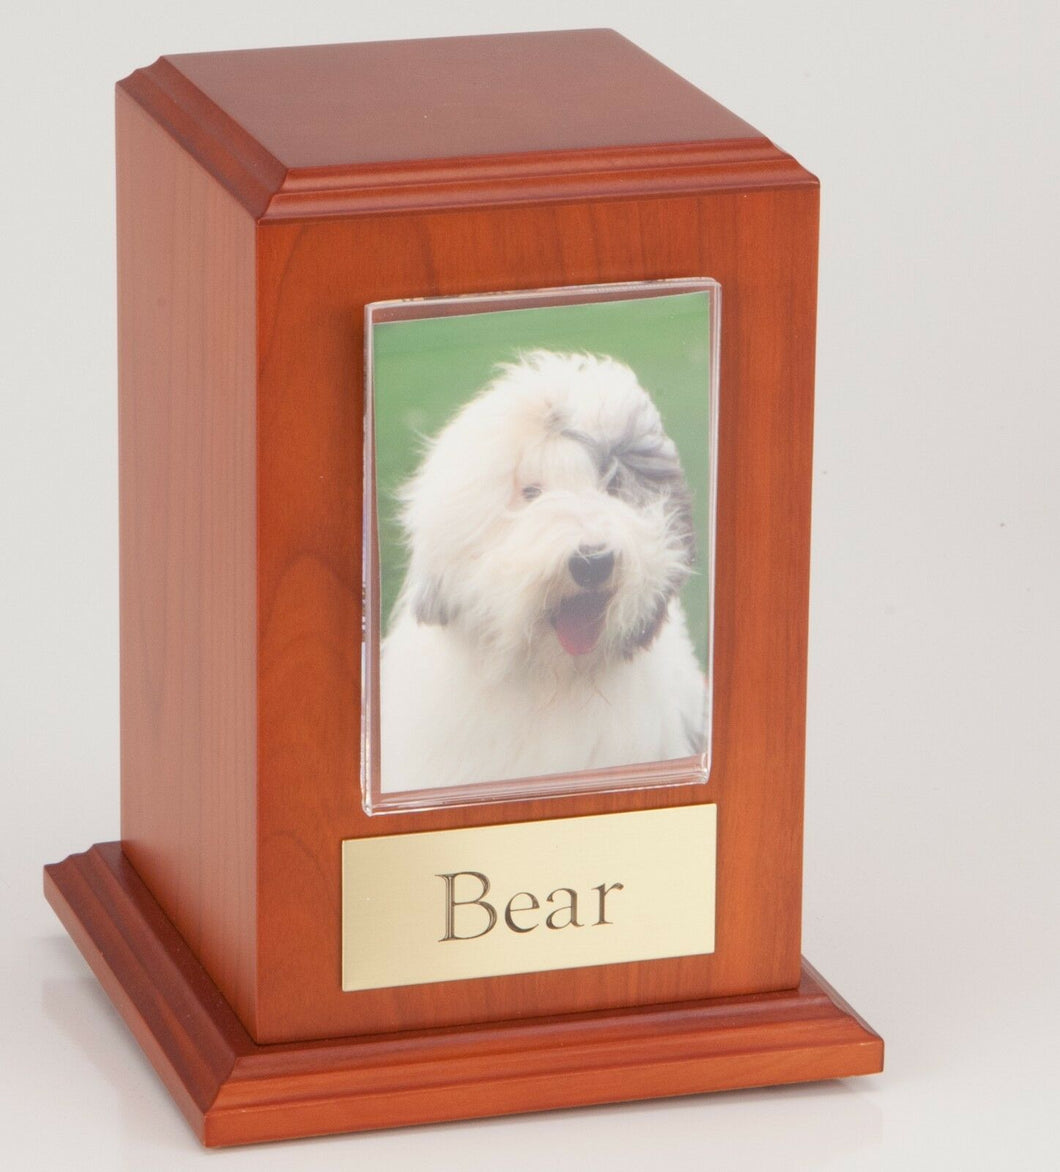 Large 240 Cubic Ins Cherry Pet Tower Photo Urn for Ashes w/Engravable Nameplate